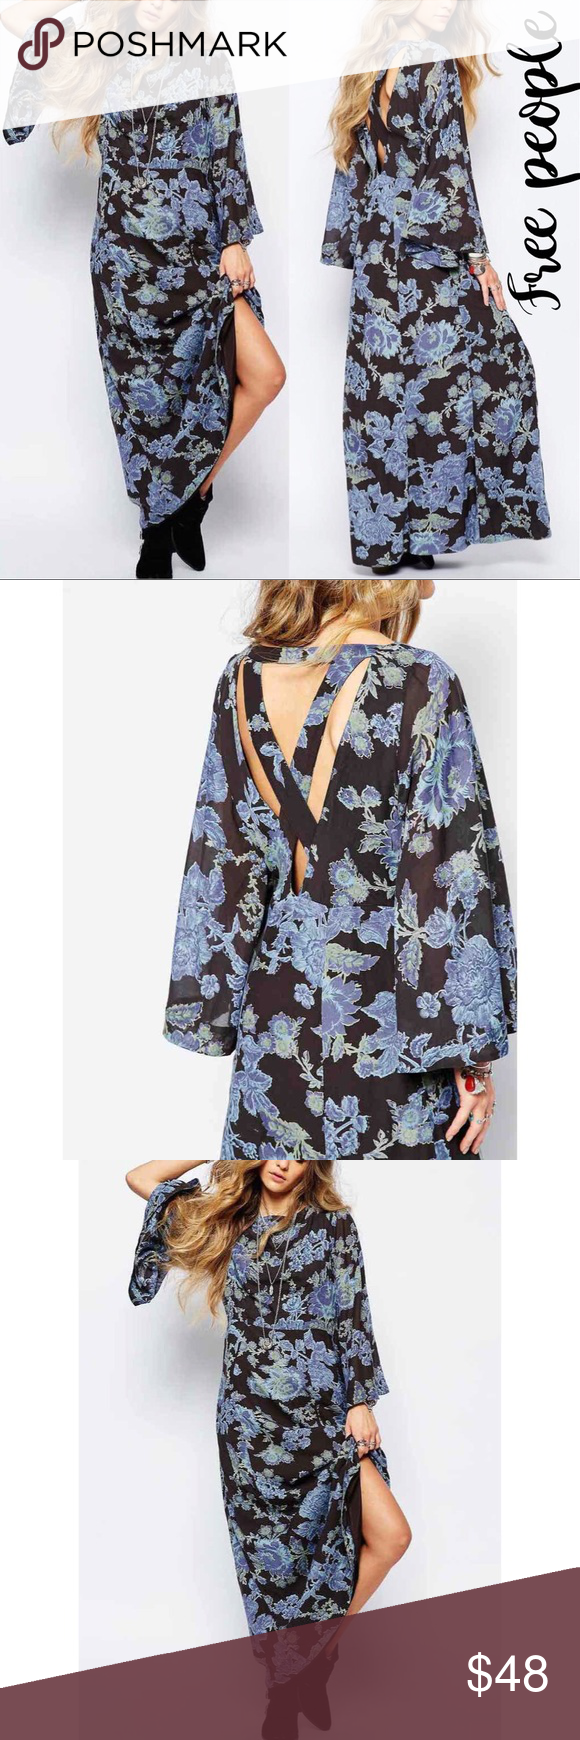 Free people melrose bell sleeve maxi dress size nwt